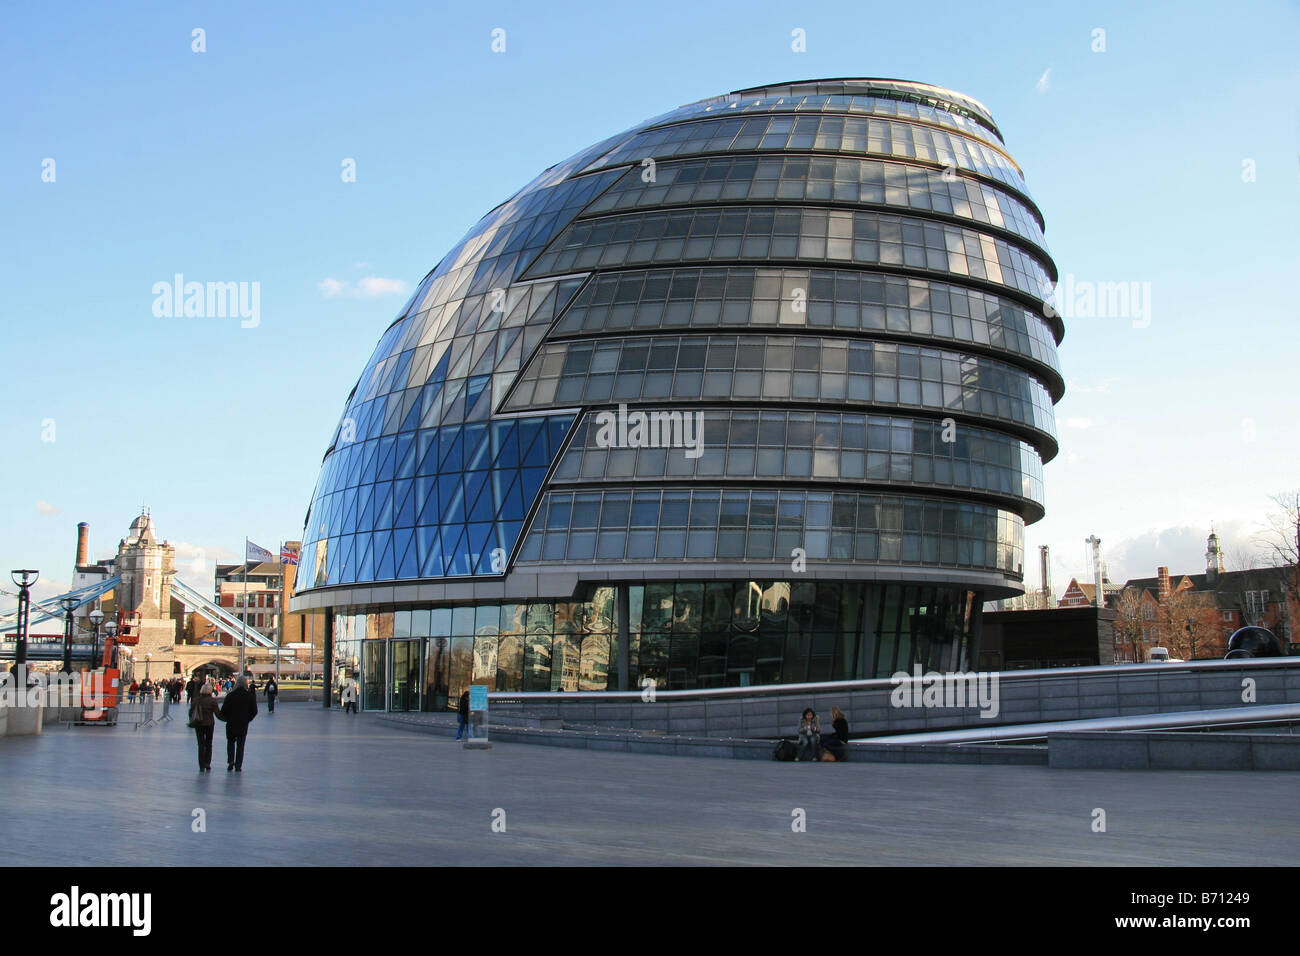 City Hall, the home of the London Assembly and the Mayor of London, beside Tower Bridge, London. - Stock Image